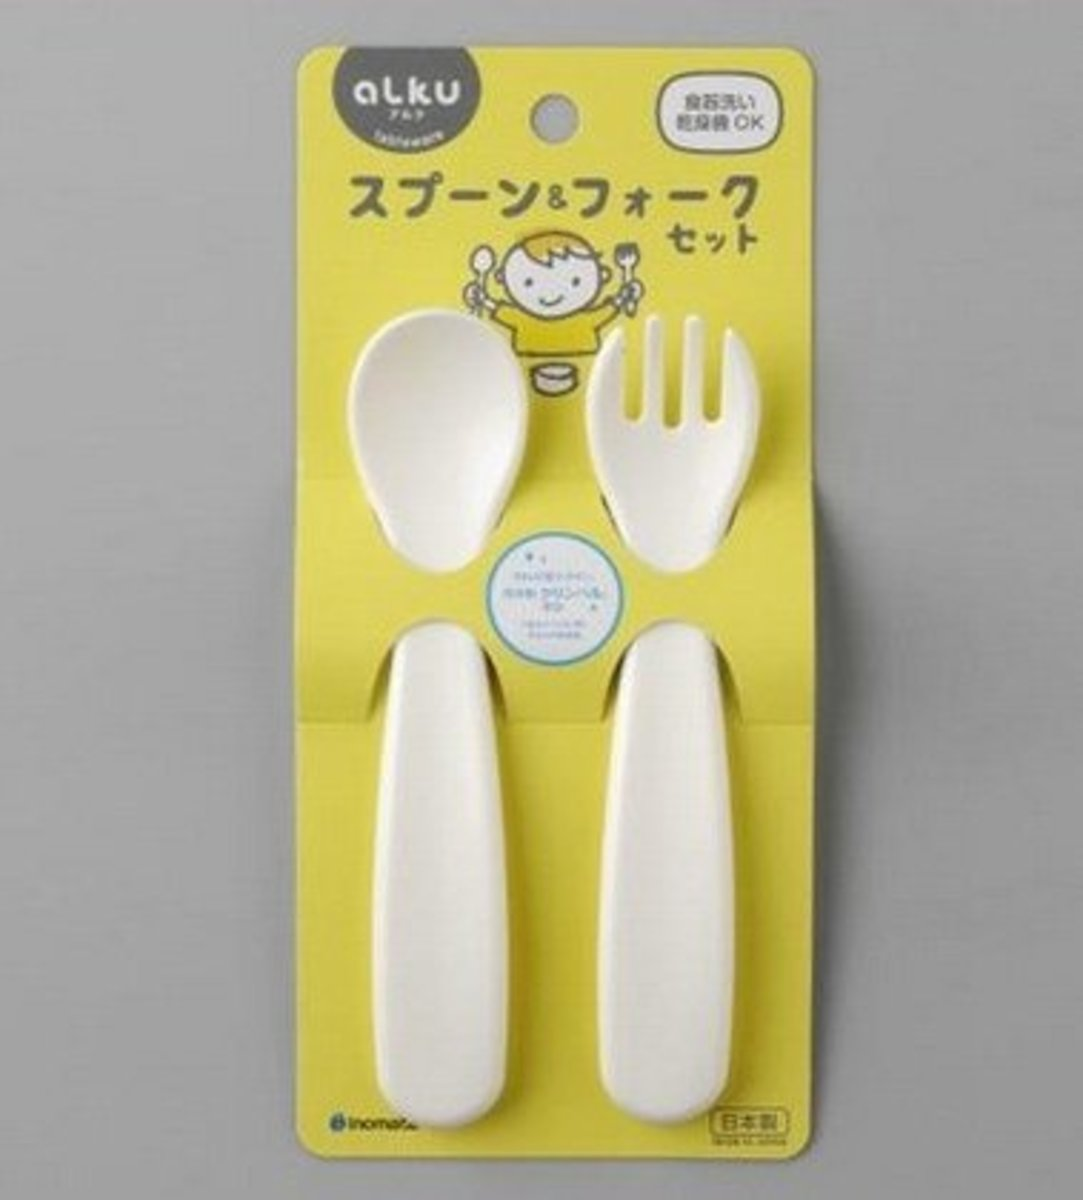 Made in Japan Toddlers Cutlery Set (Spoon + Fork)